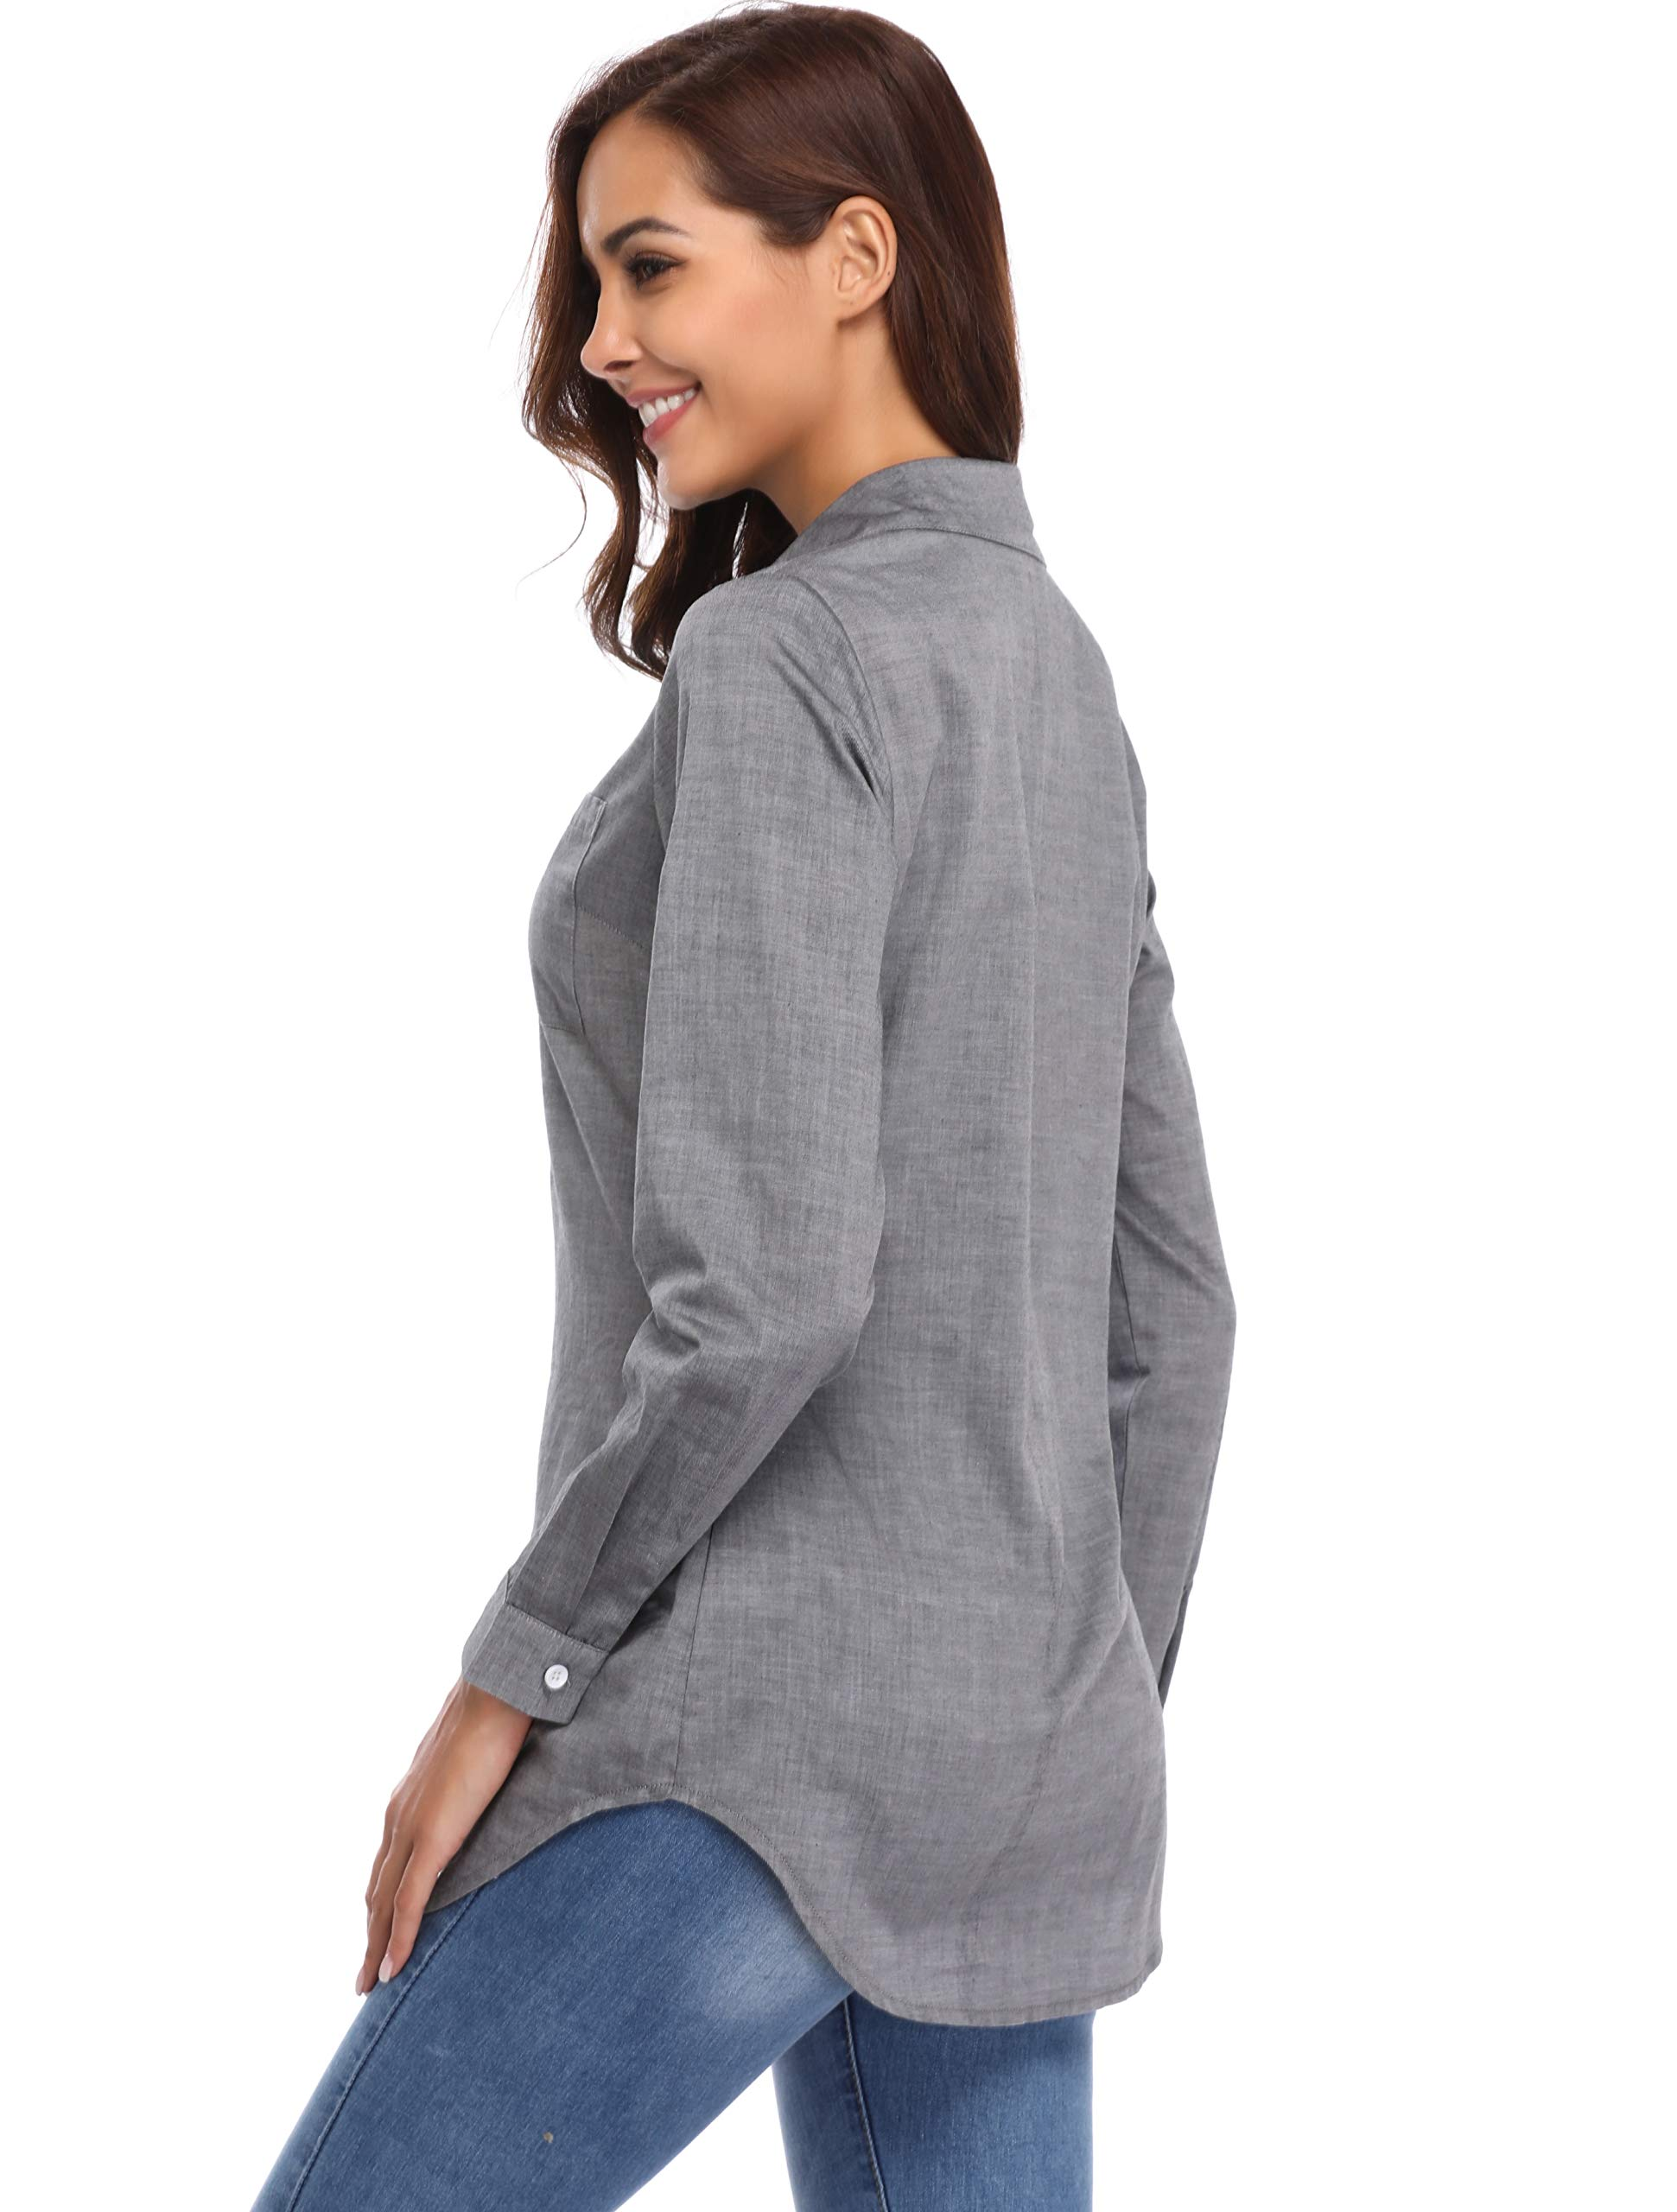 Argstar Women's Chambray Button Down Shirt Long Sleeve Jeans Top,Gray,Large (US 12-14) by Argstar (Image #3)